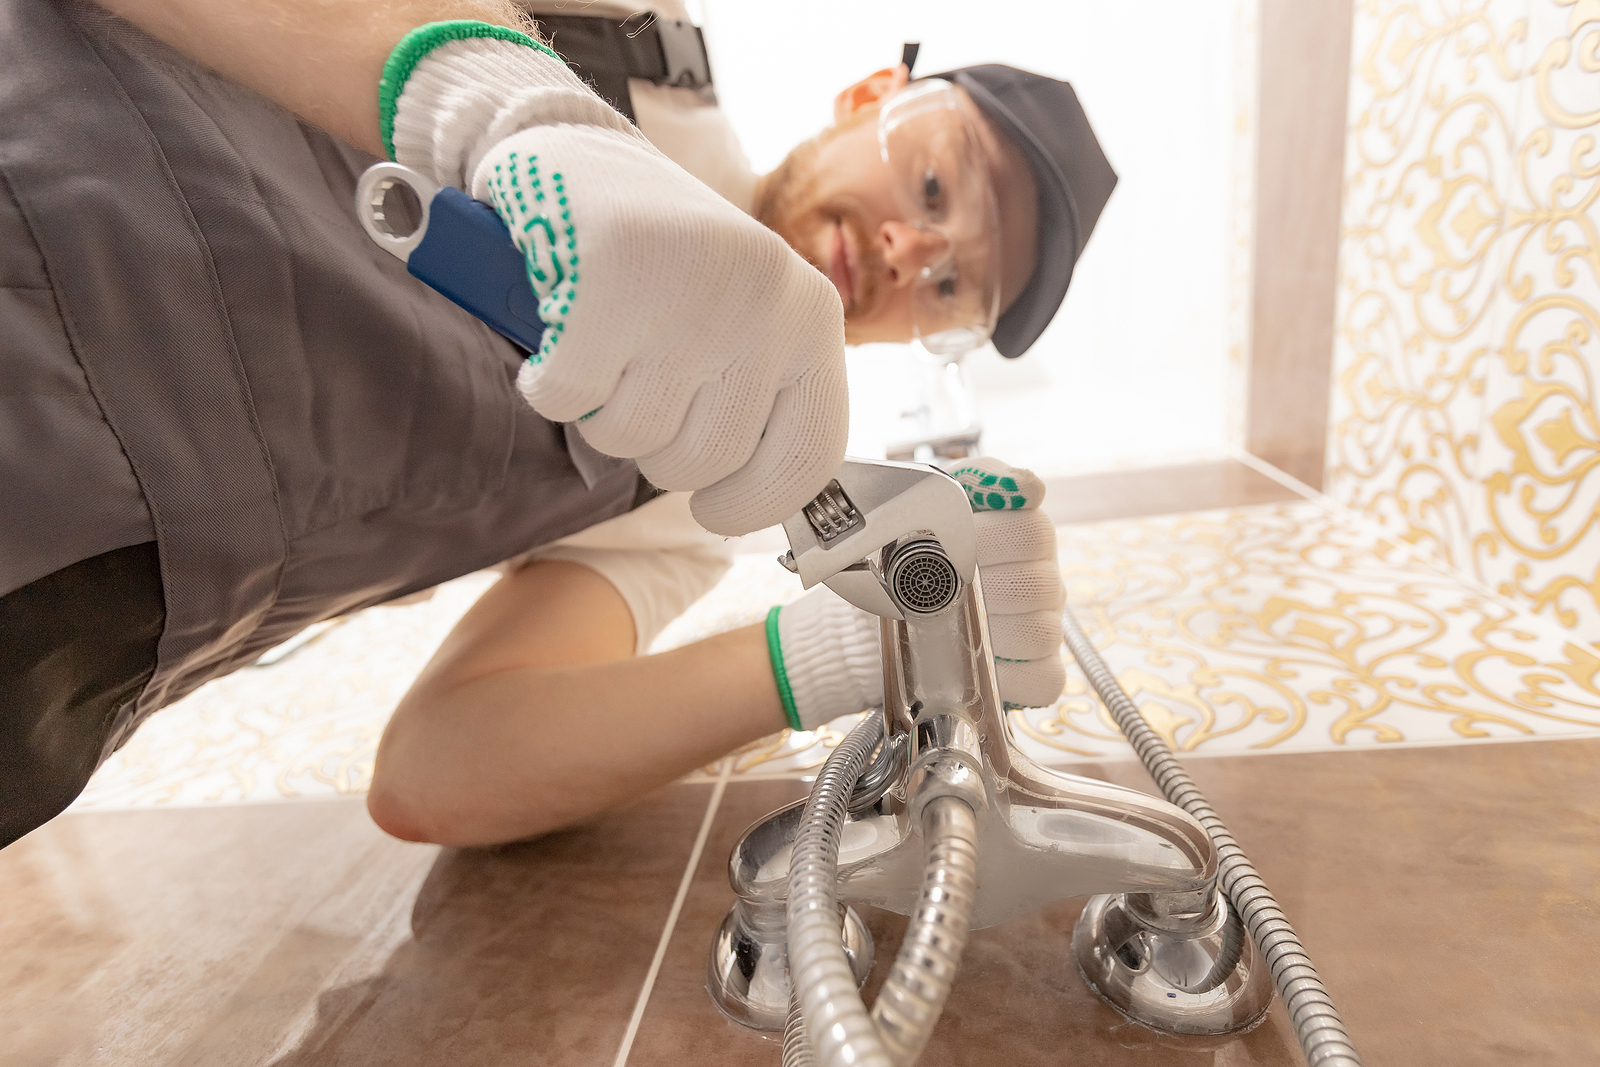 Plumber in Wellington installing a shower stall